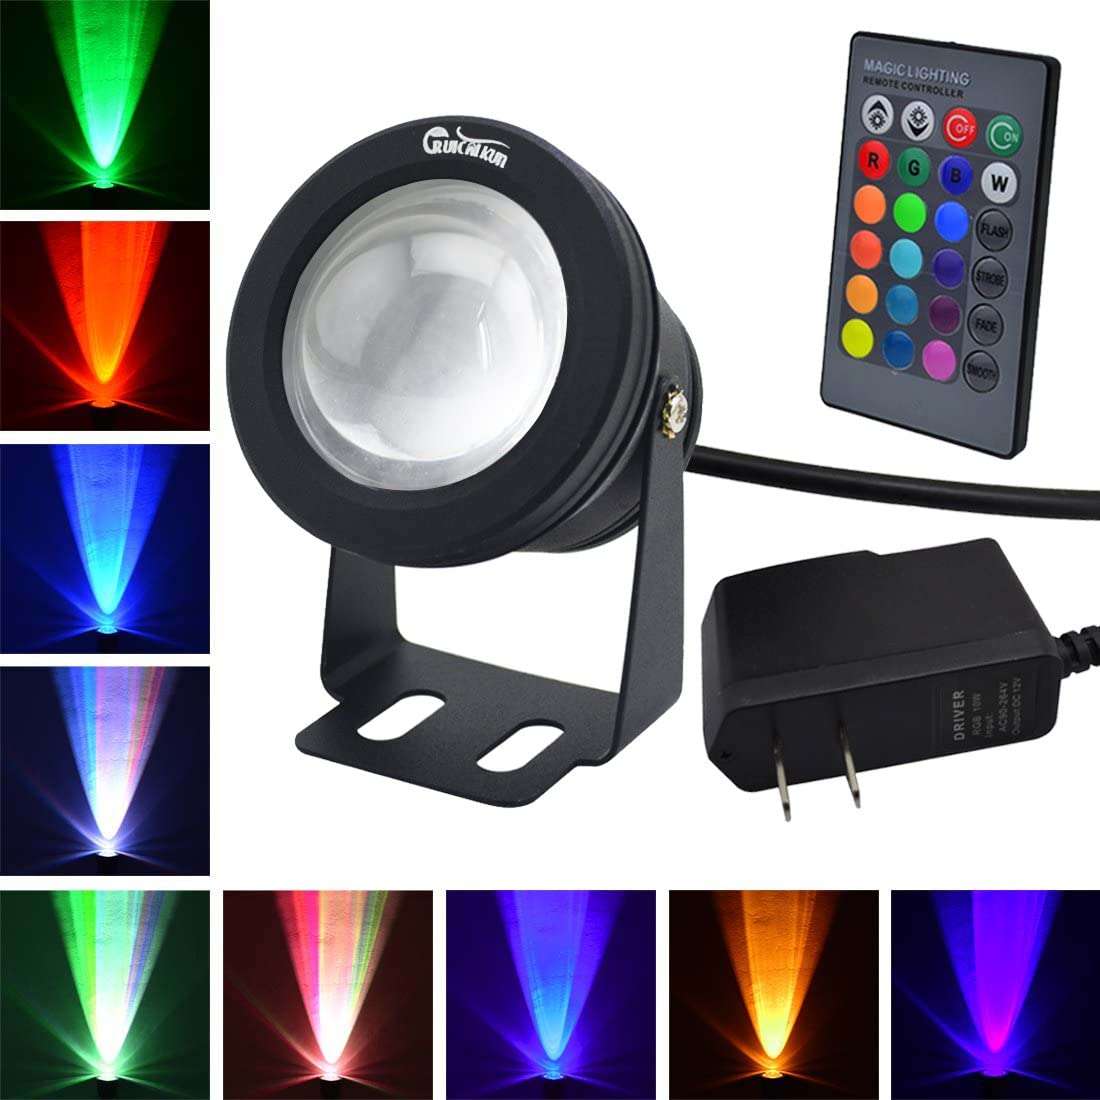 RUICAIKUN LED Flood Light 10W Waterproof Outdoor US Plug RGB Light with Remote Control DC AC 12V ,Above Ground LED Spotlights